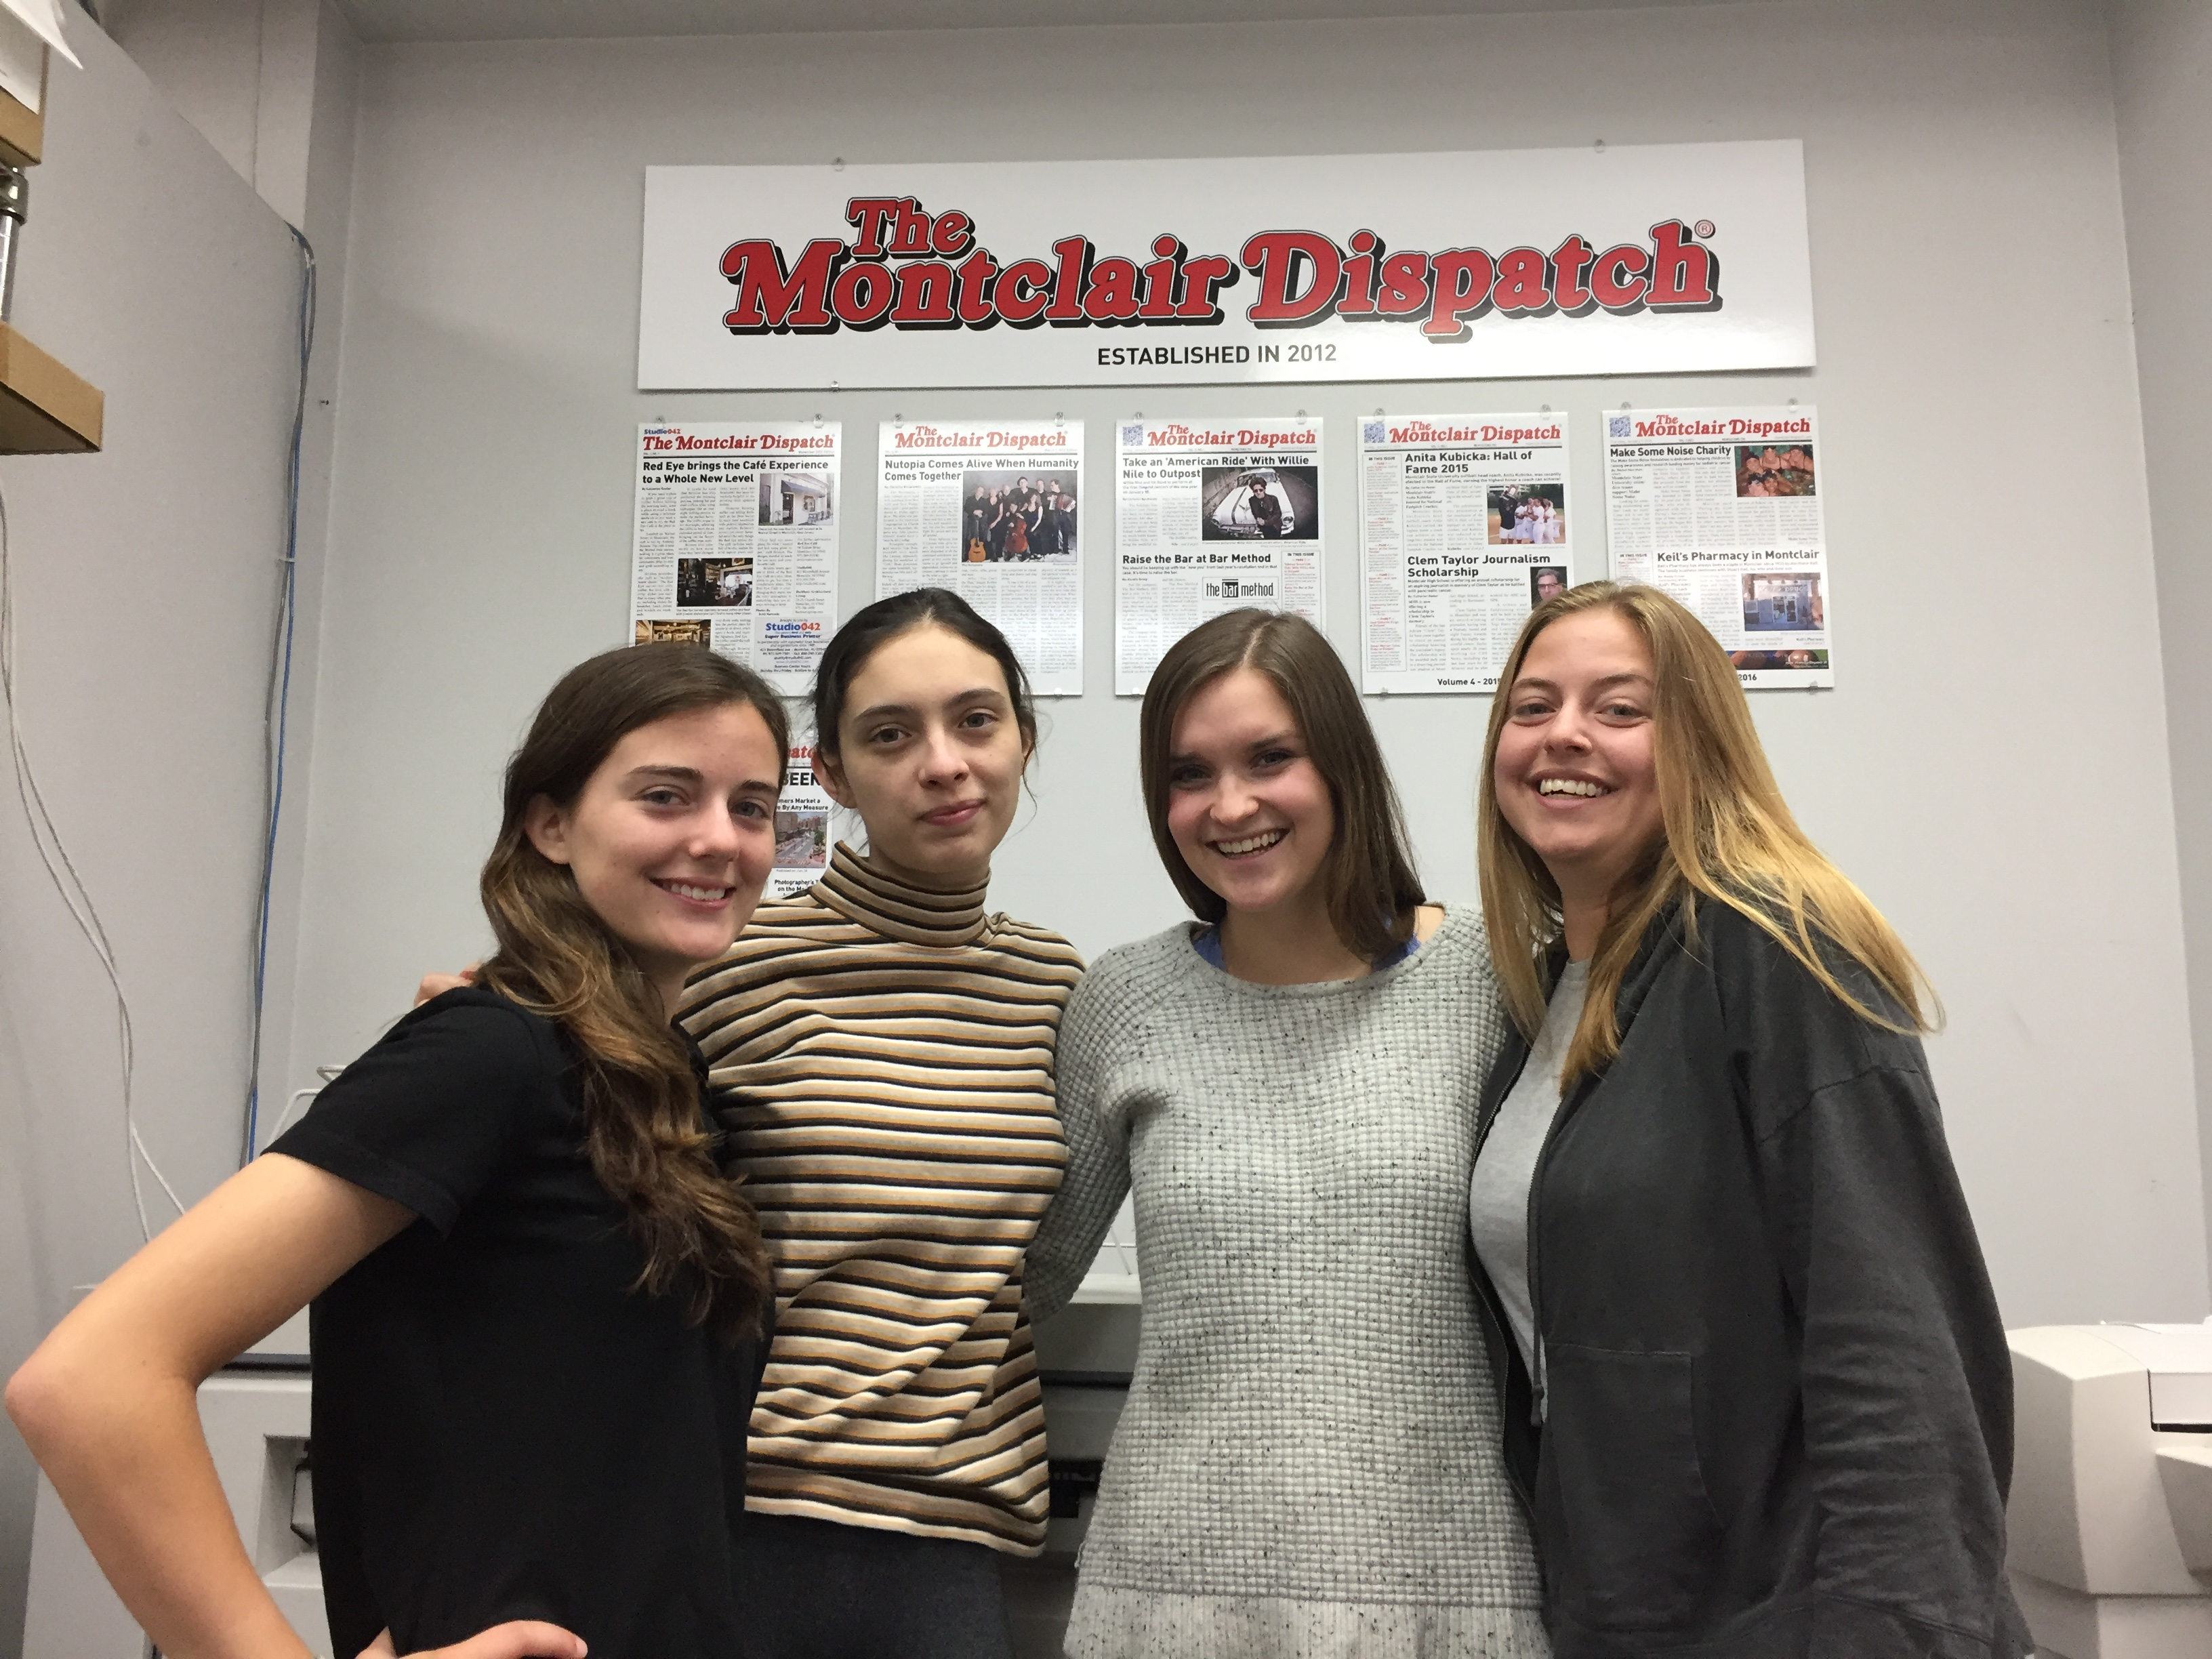 Julianna Wittmann, Cristi Kennedy, Isabelle Siddons, and Samantha Wittmann. Photo by Scott Kennedy for The Montclair Dispatch.